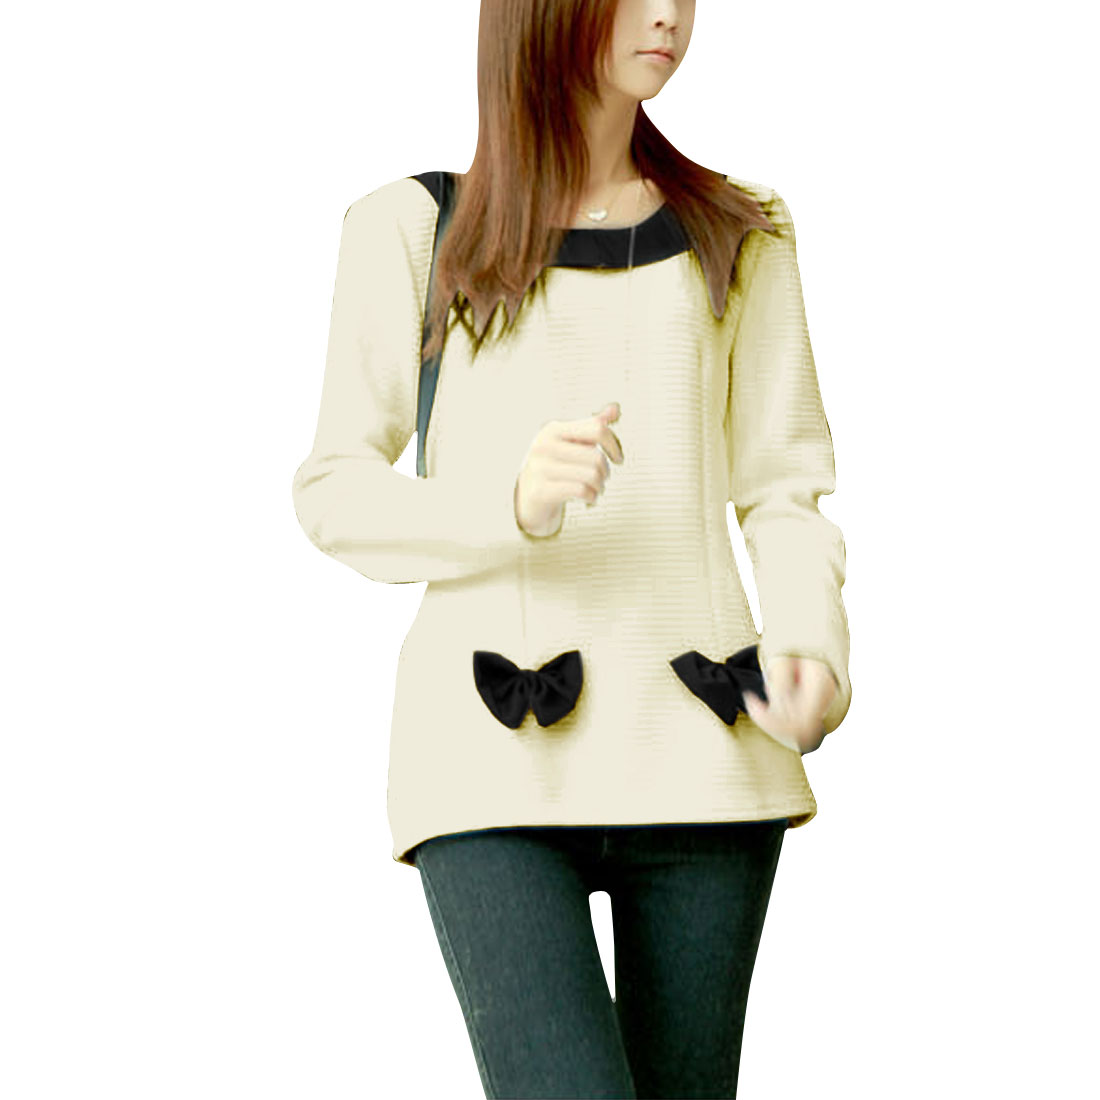 Ladies Round Neck Bowknot Decor Texuture Beige Black Shirt Top XS